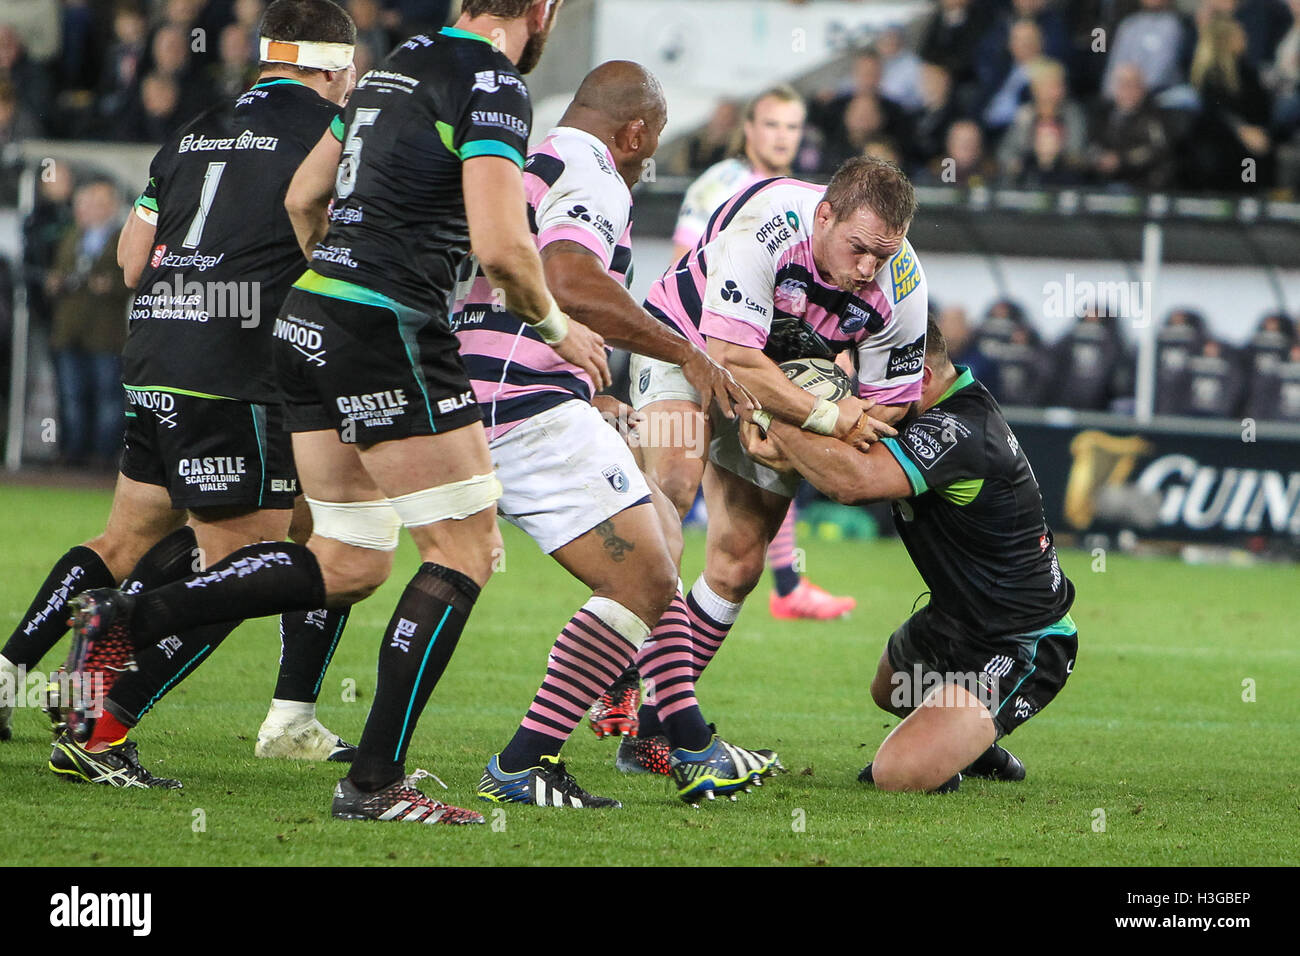 Ospreys v Cardiff Blues, Guinness Pro 12 Rugby Match, 7th October 2017, The Liberty Stadium, Swansea - Stock Image